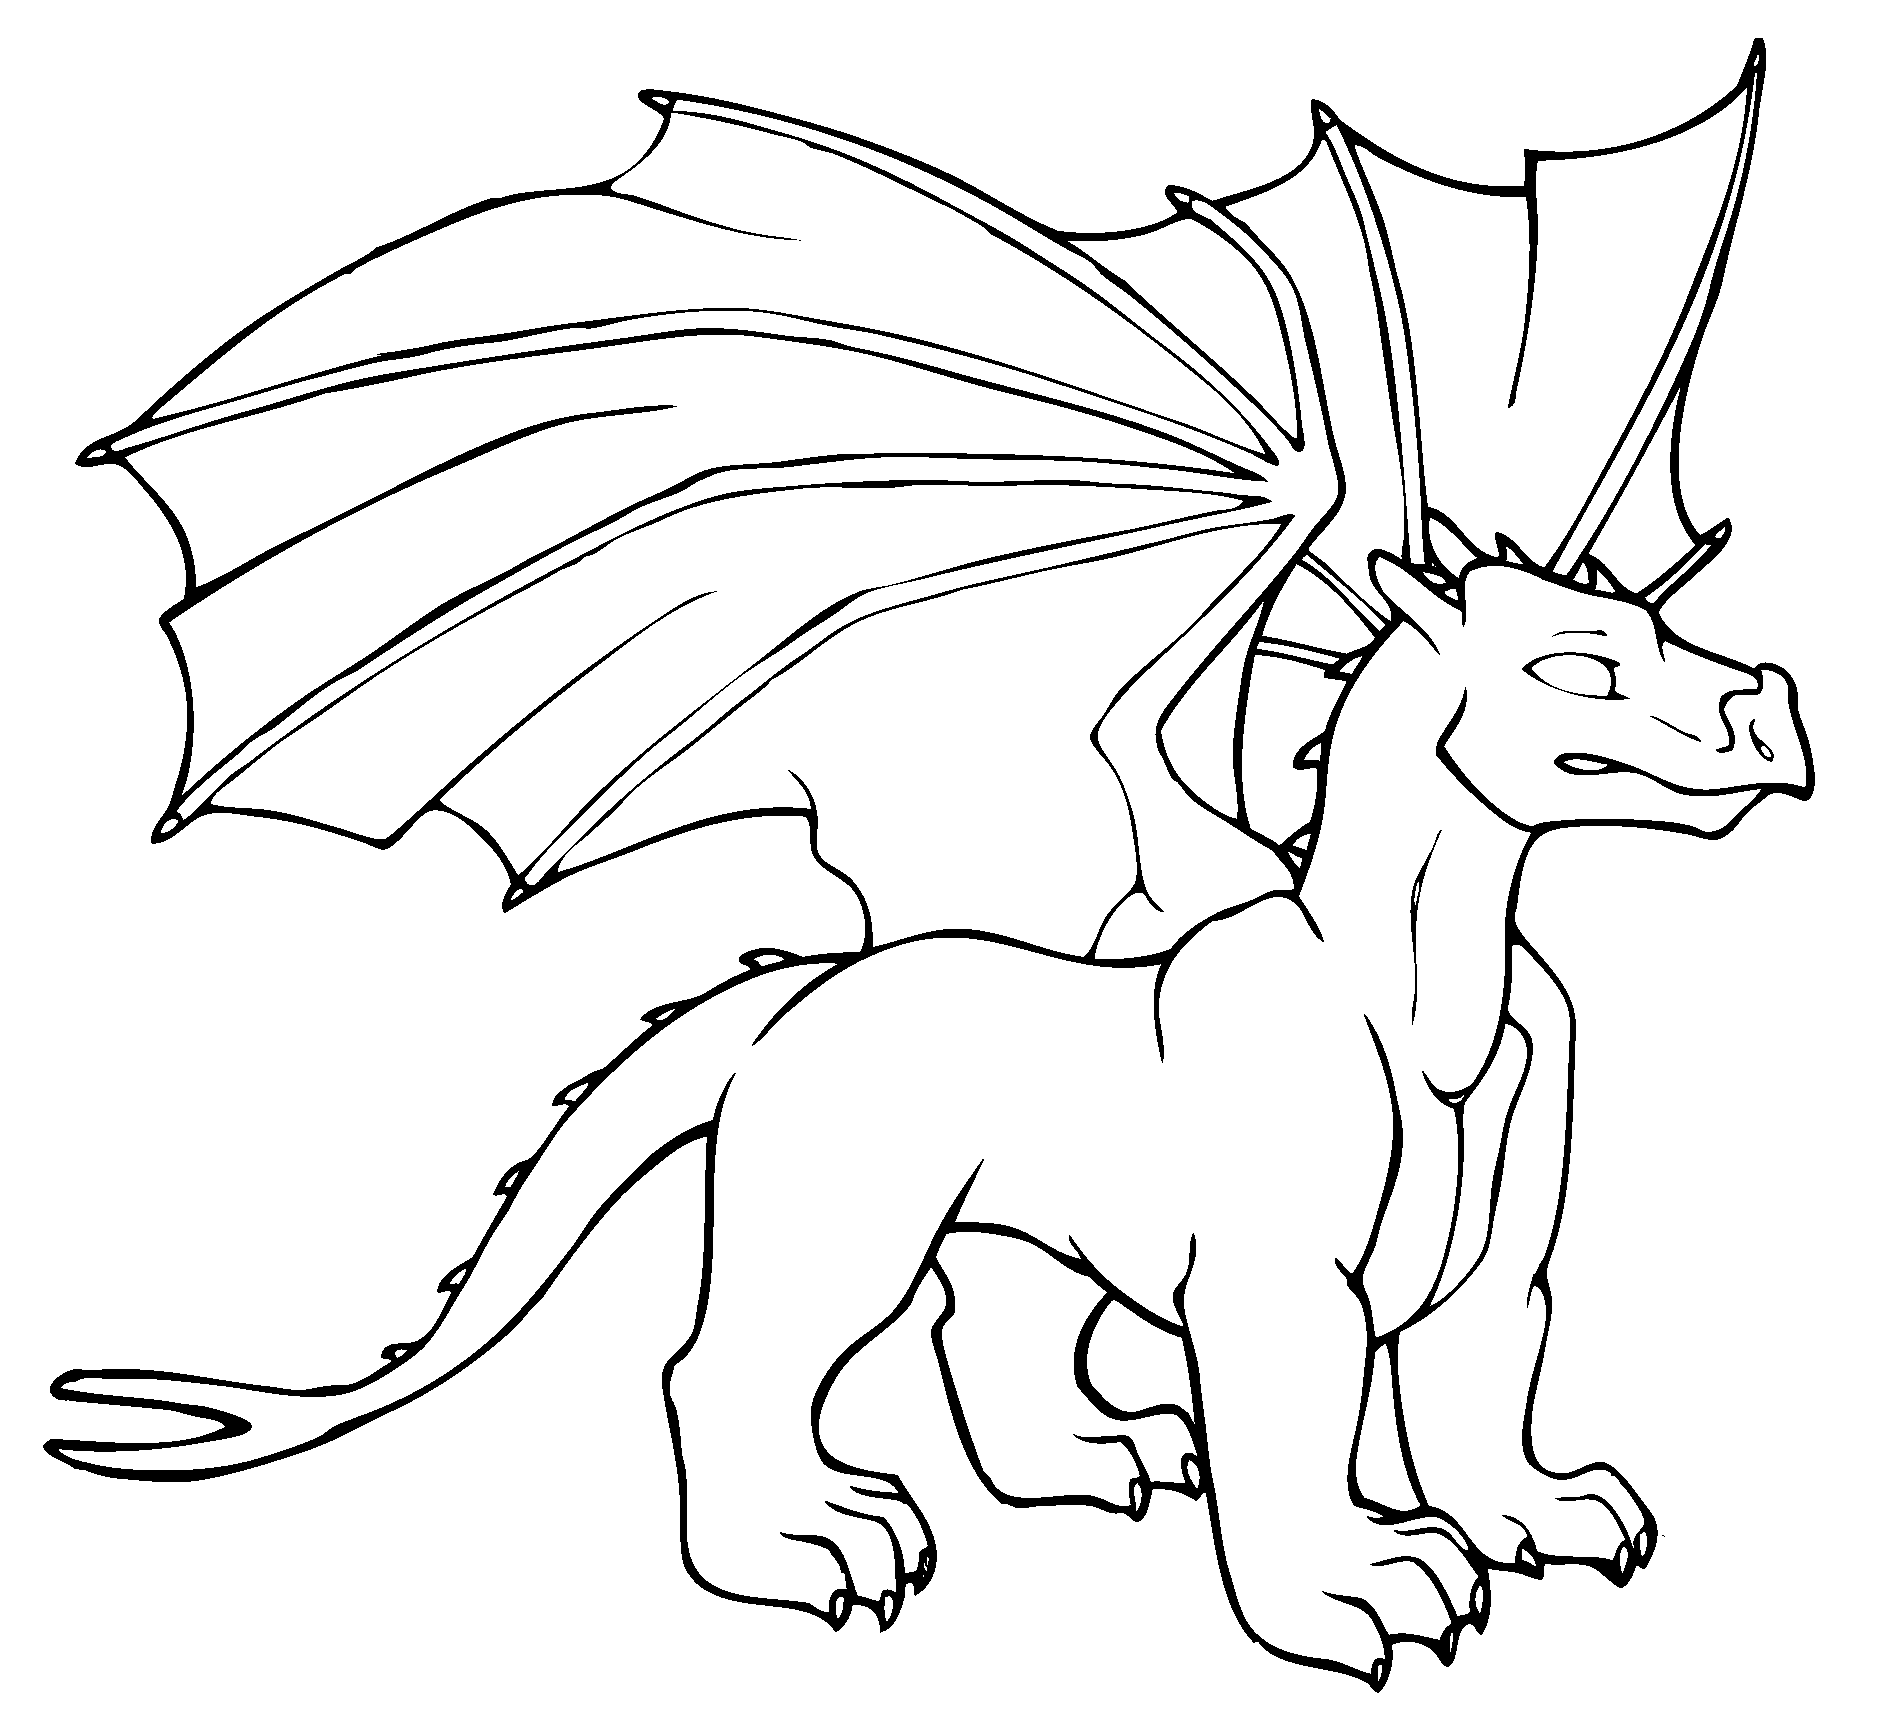 coloring dragons dragon coloring pages for adults best coloring pages for coloring dragons 1 1